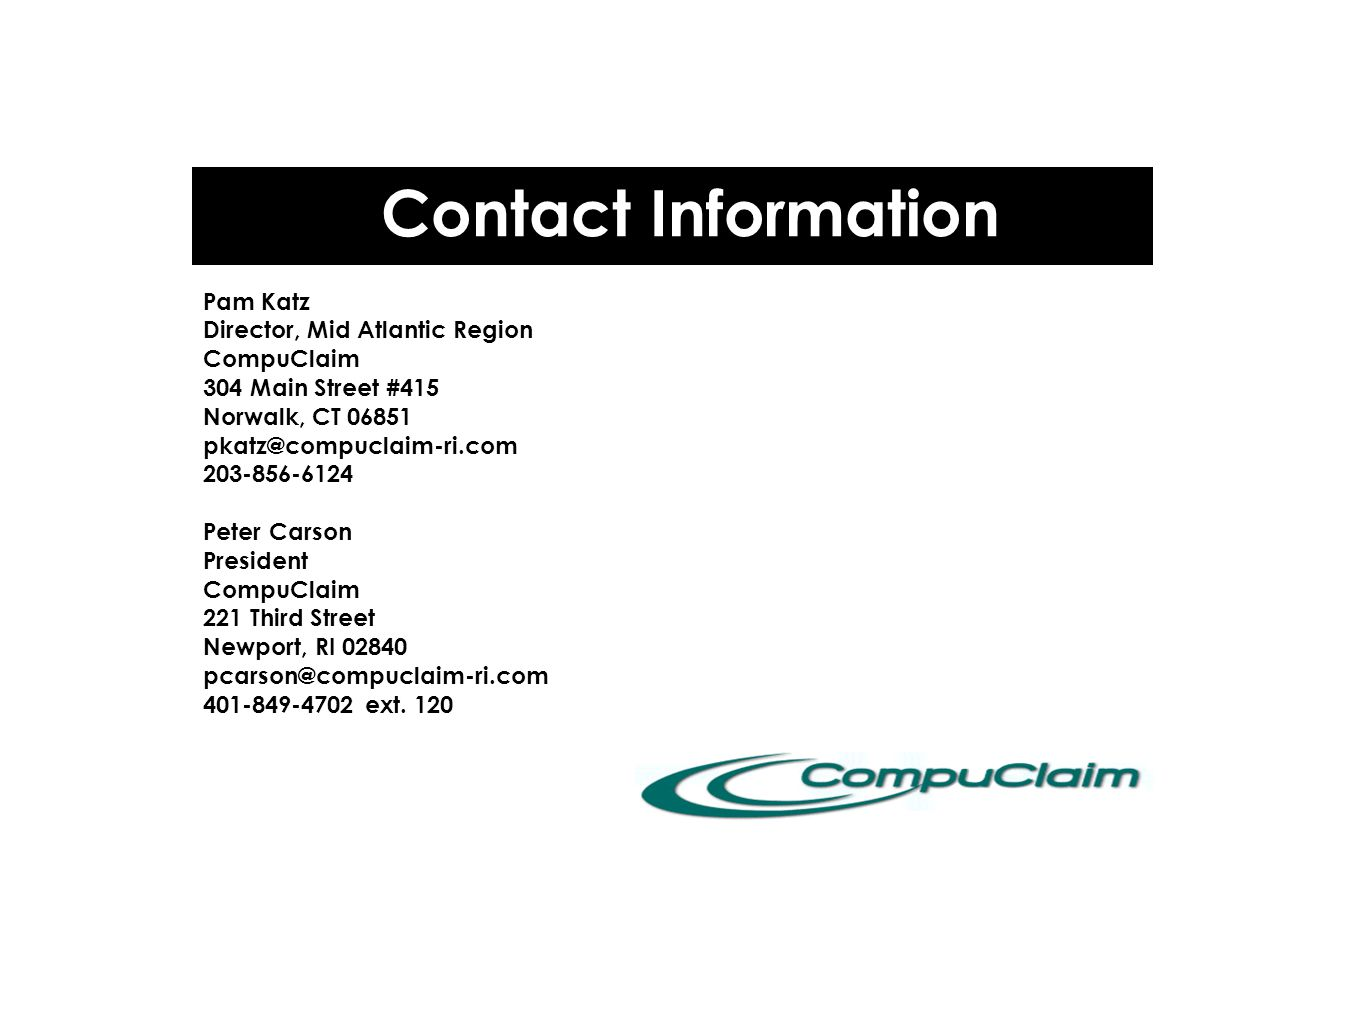 Contact Information Pam Katz Director, Mid Atlantic Region CompuClaim 304 Main Street #415 Norwalk, CT 06851 pkatz@compuclaim-ri.com 203-856-6124 Pete